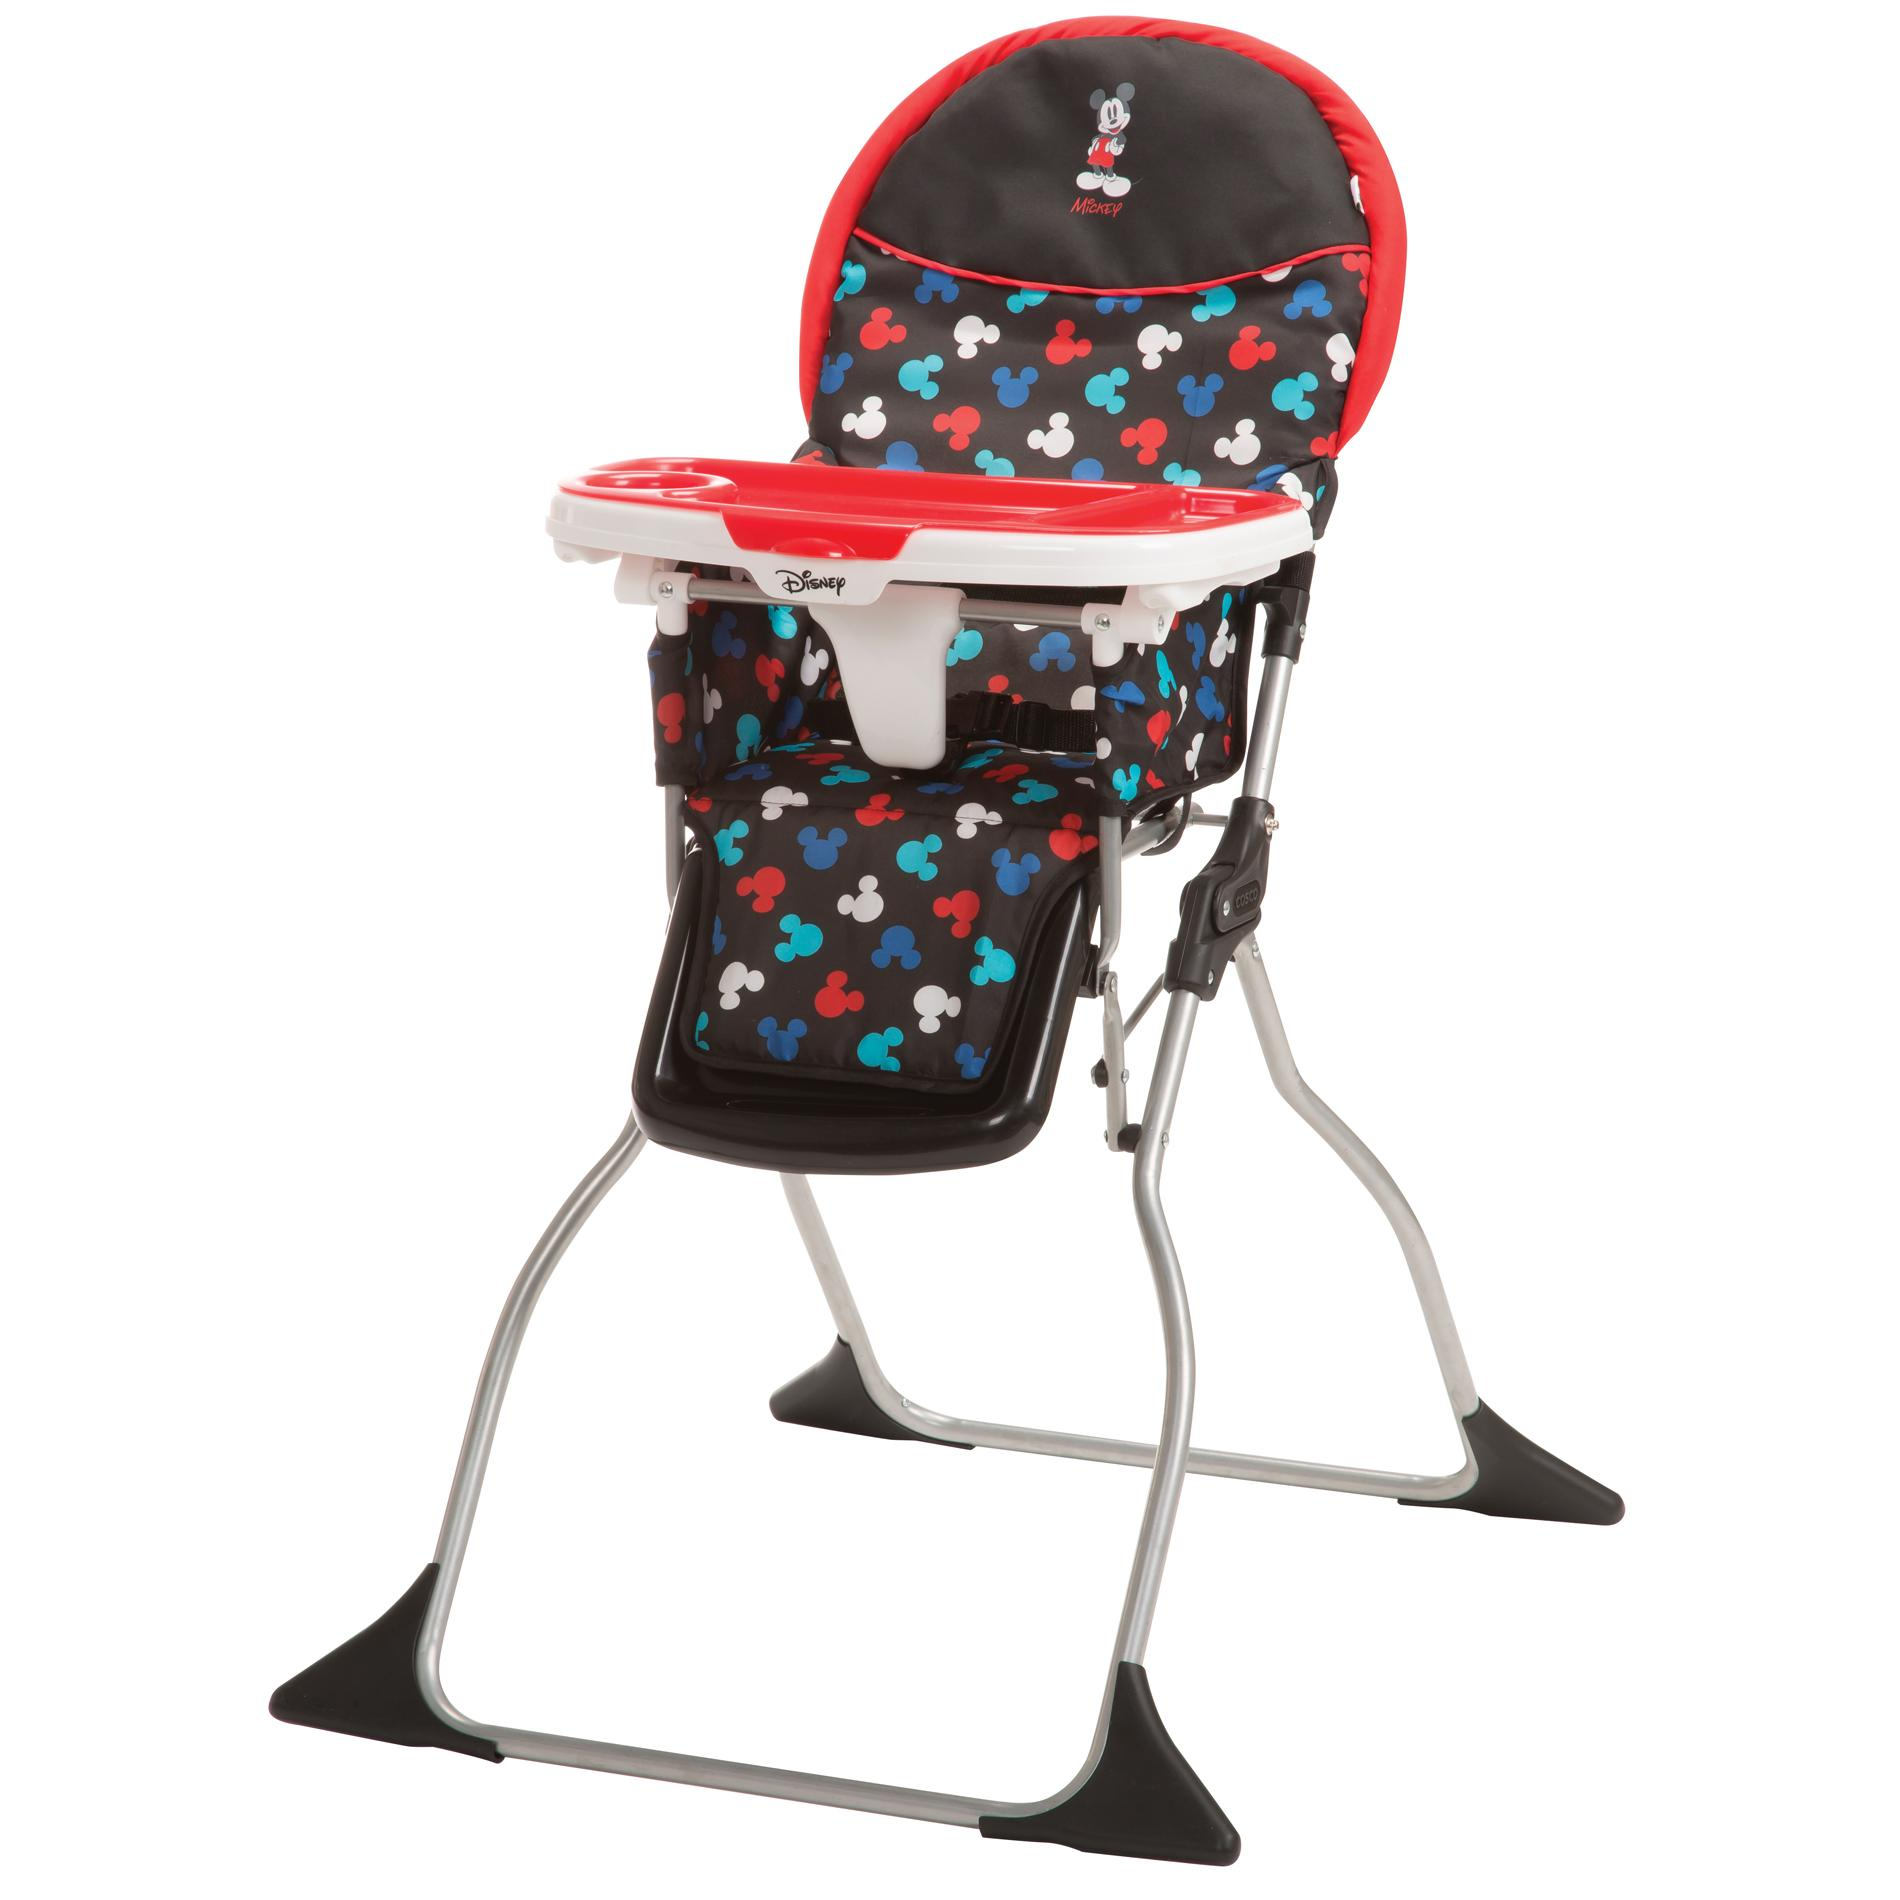 Disney Mickey Mouse Simple Fold Plus High Chair